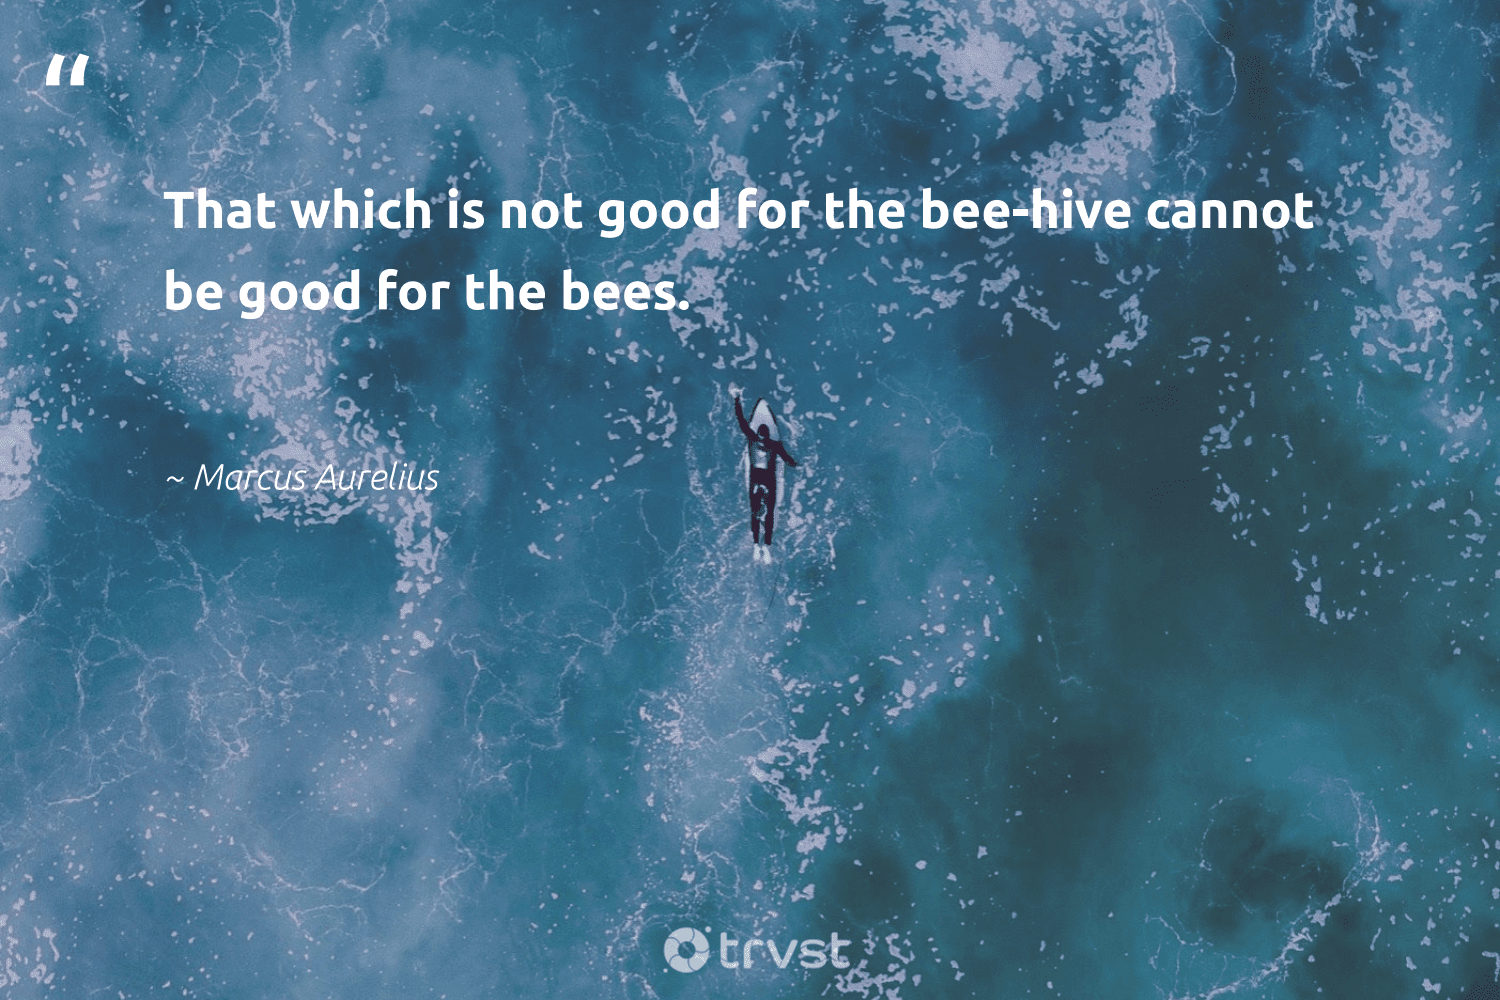 """""""That which is not good for the bee-hive cannot be good for the bees.""""  - Marcus Aurelius #trvst #quotes #bee #bees #honey #beekeeper #beehive #geology #collectiveaction #beekeepers #honeybee #pollen"""